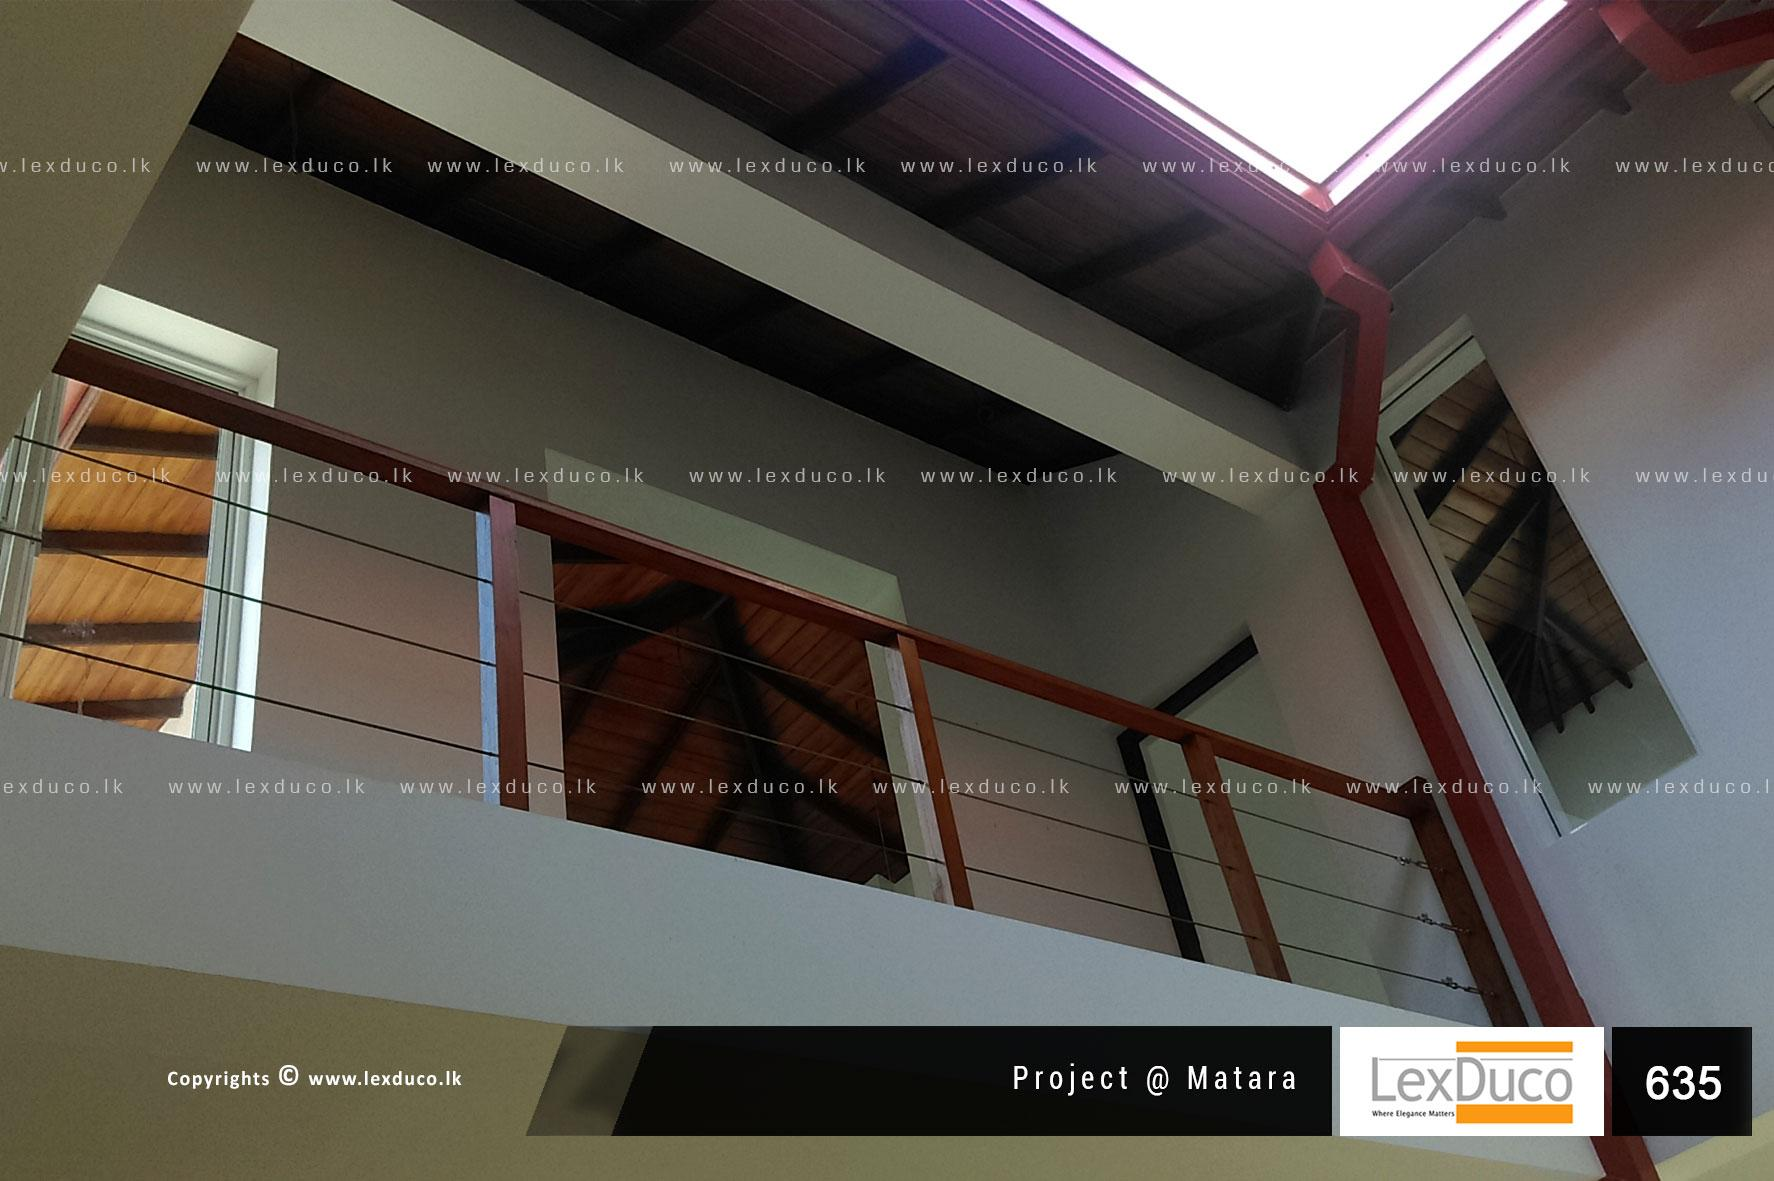 Residential Housing Project at Matara | Lex Duco